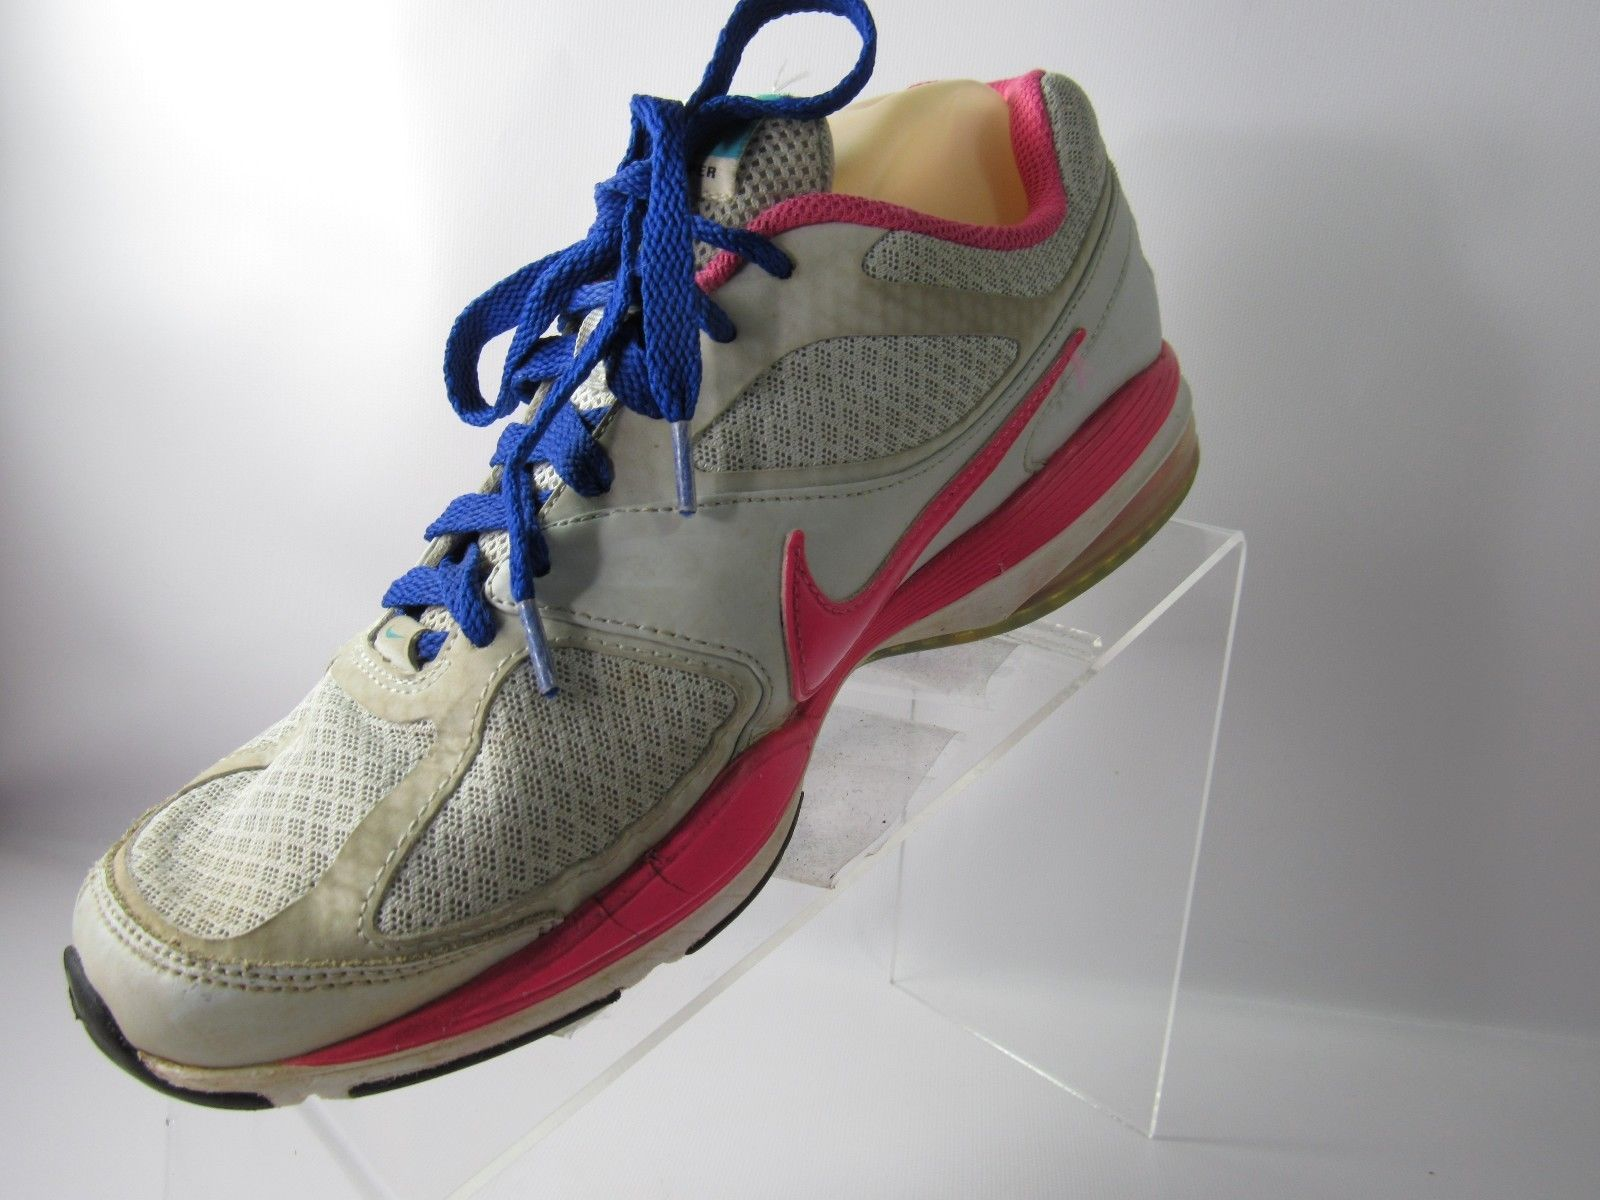 f913734a2f3 ... Nike Air Max Prosper 508637-064 Size 9M Pink blue Gray Running Shoes  For Women ...